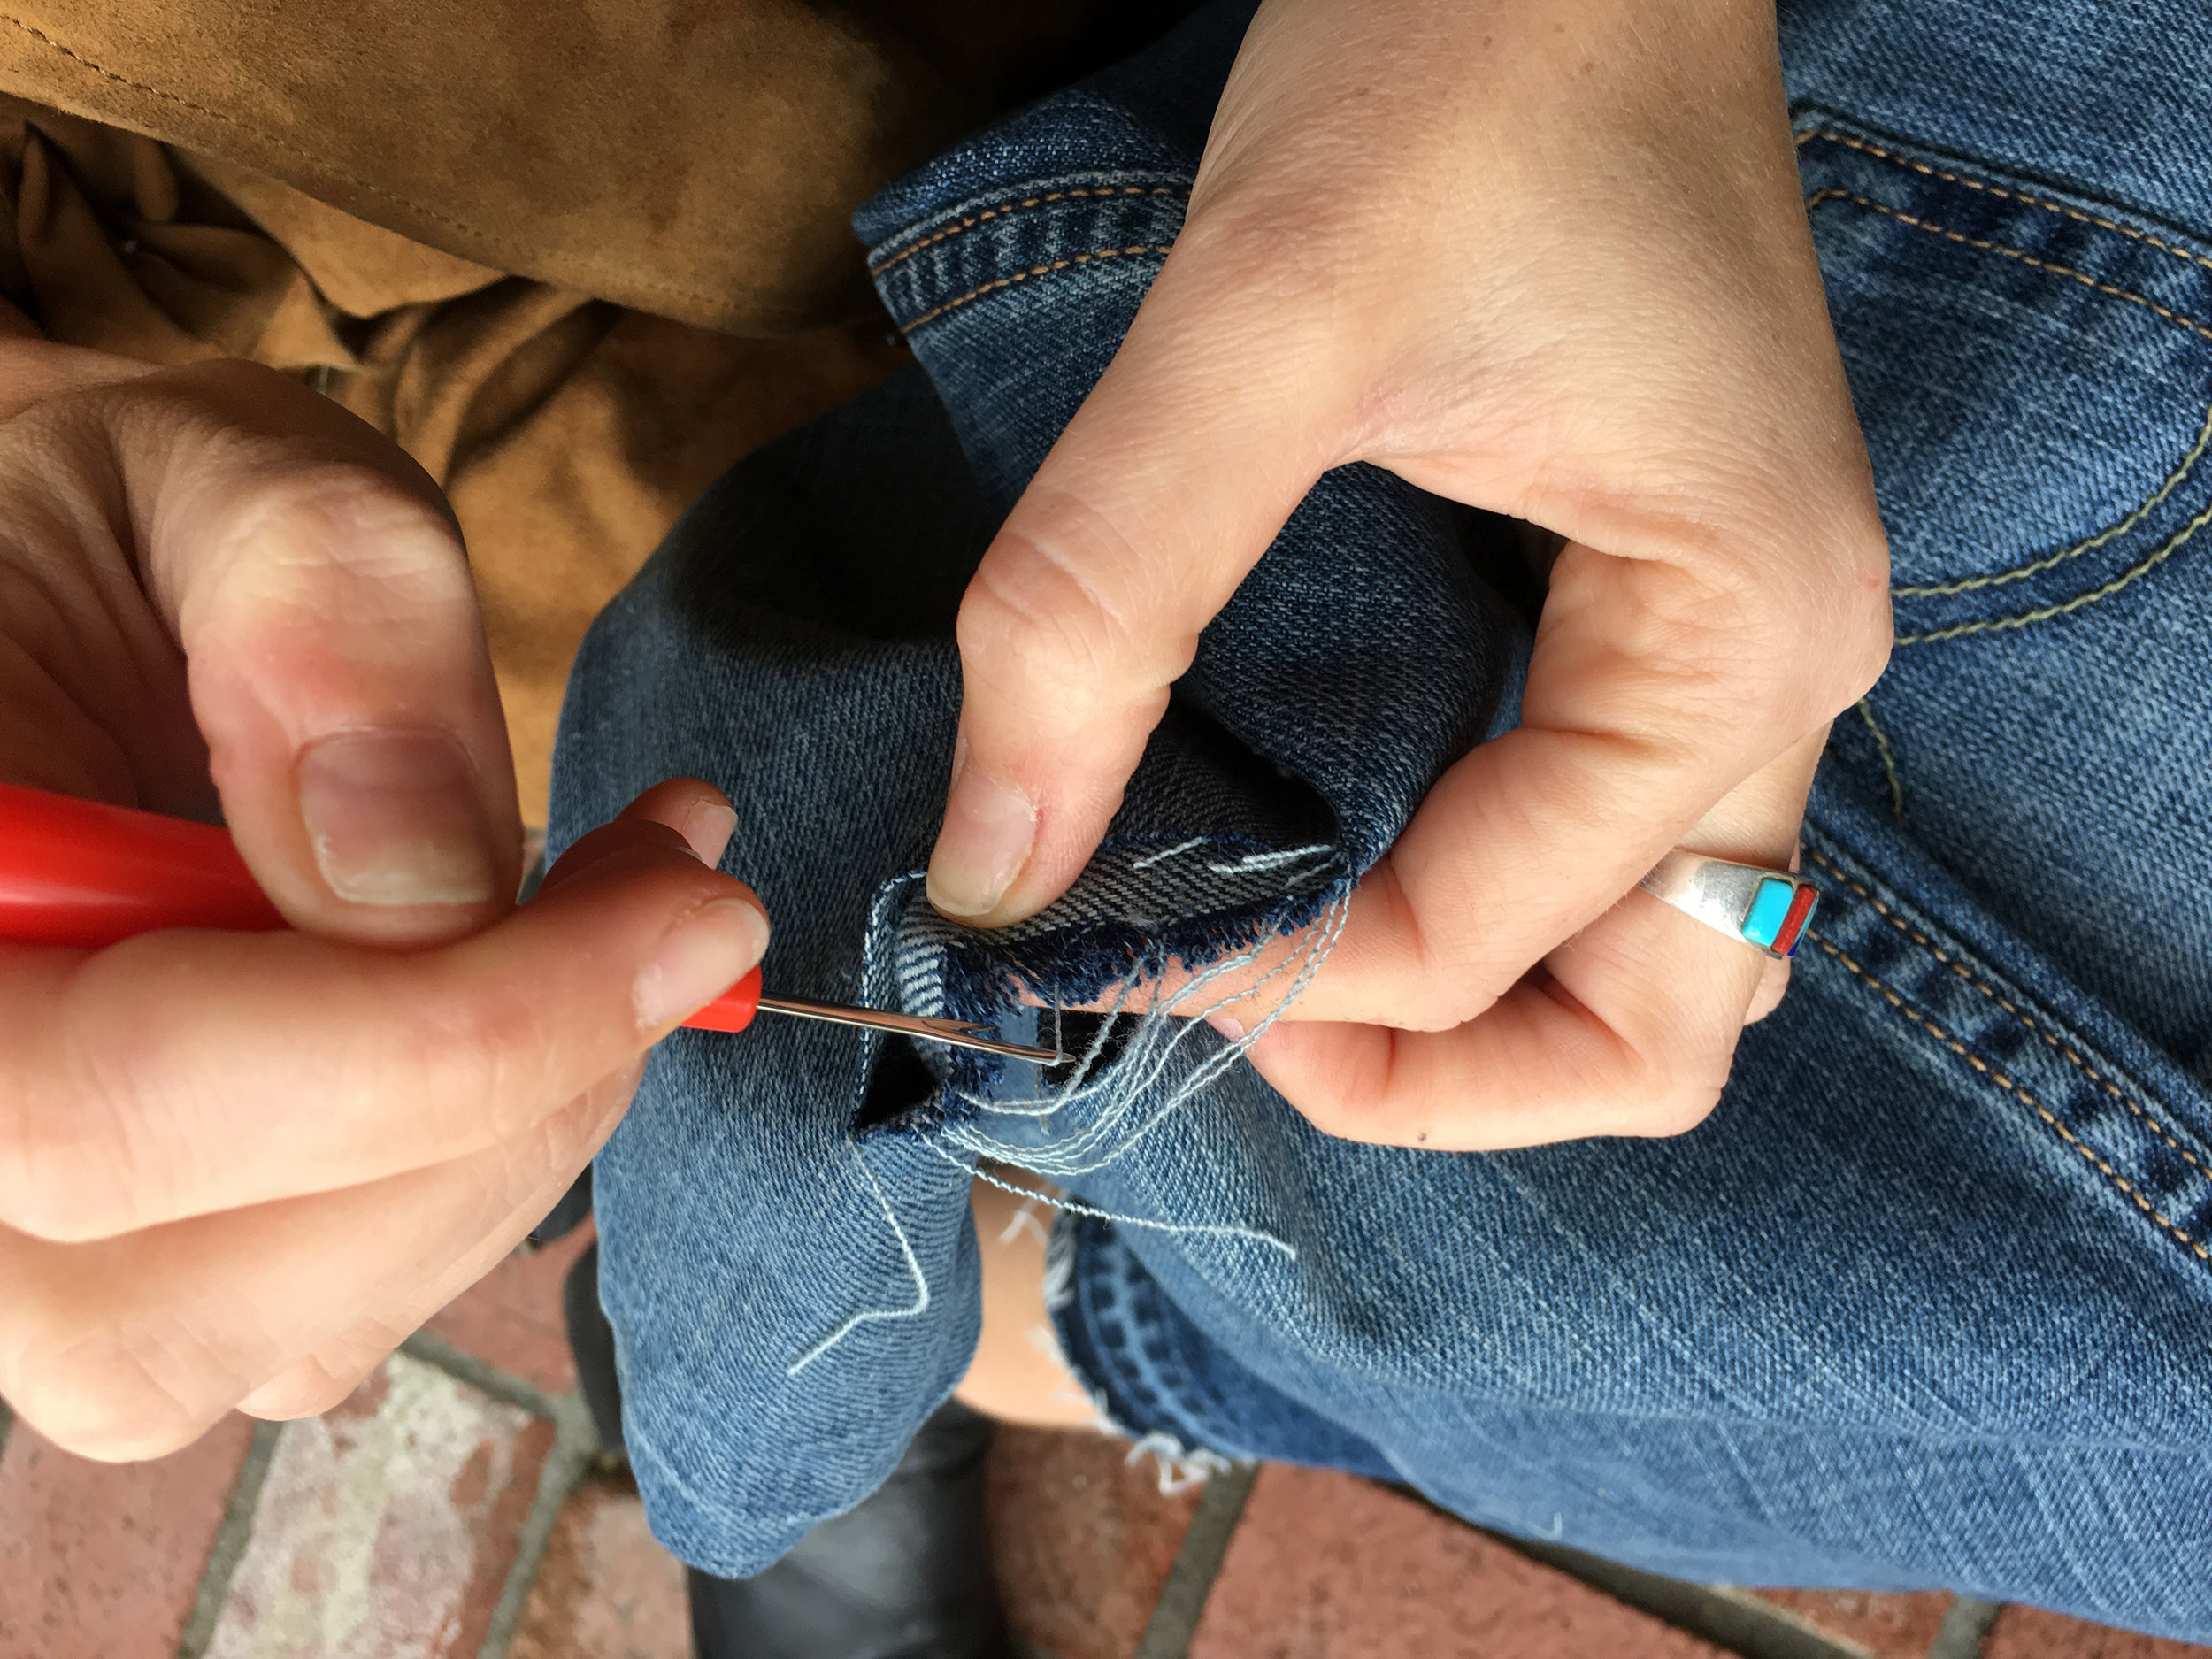 Pieceology-Vintage-How-To-DIY-Denim-Jeans-Ripping-Blog-6.jpg